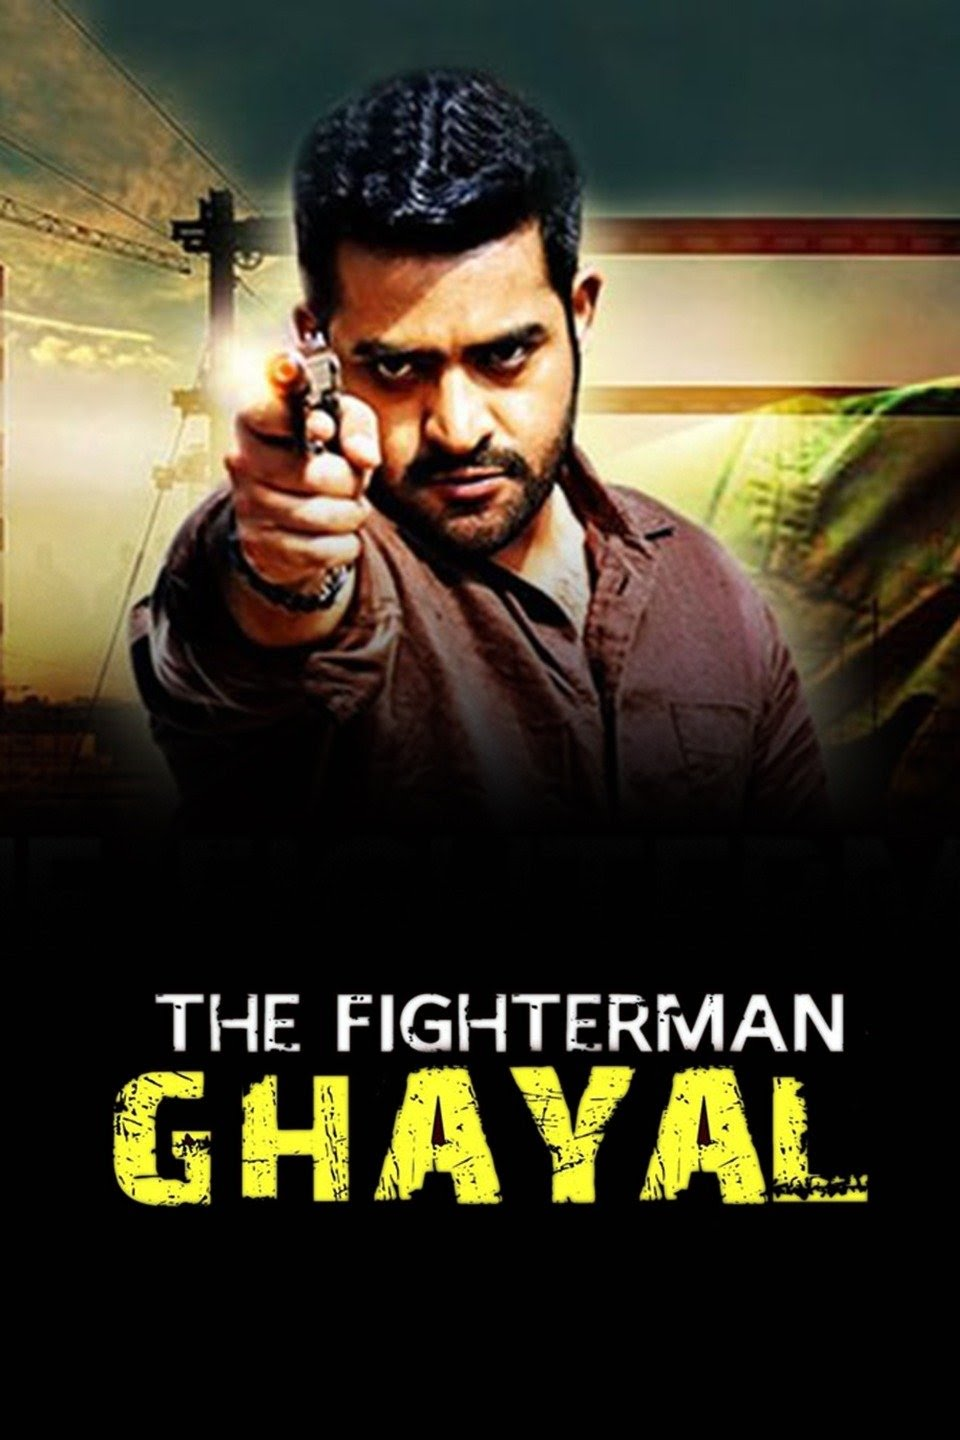 The Fighterman Ghayal (Ashok) 2021 Bengali Dubbed 720p HDRip 800MB Download